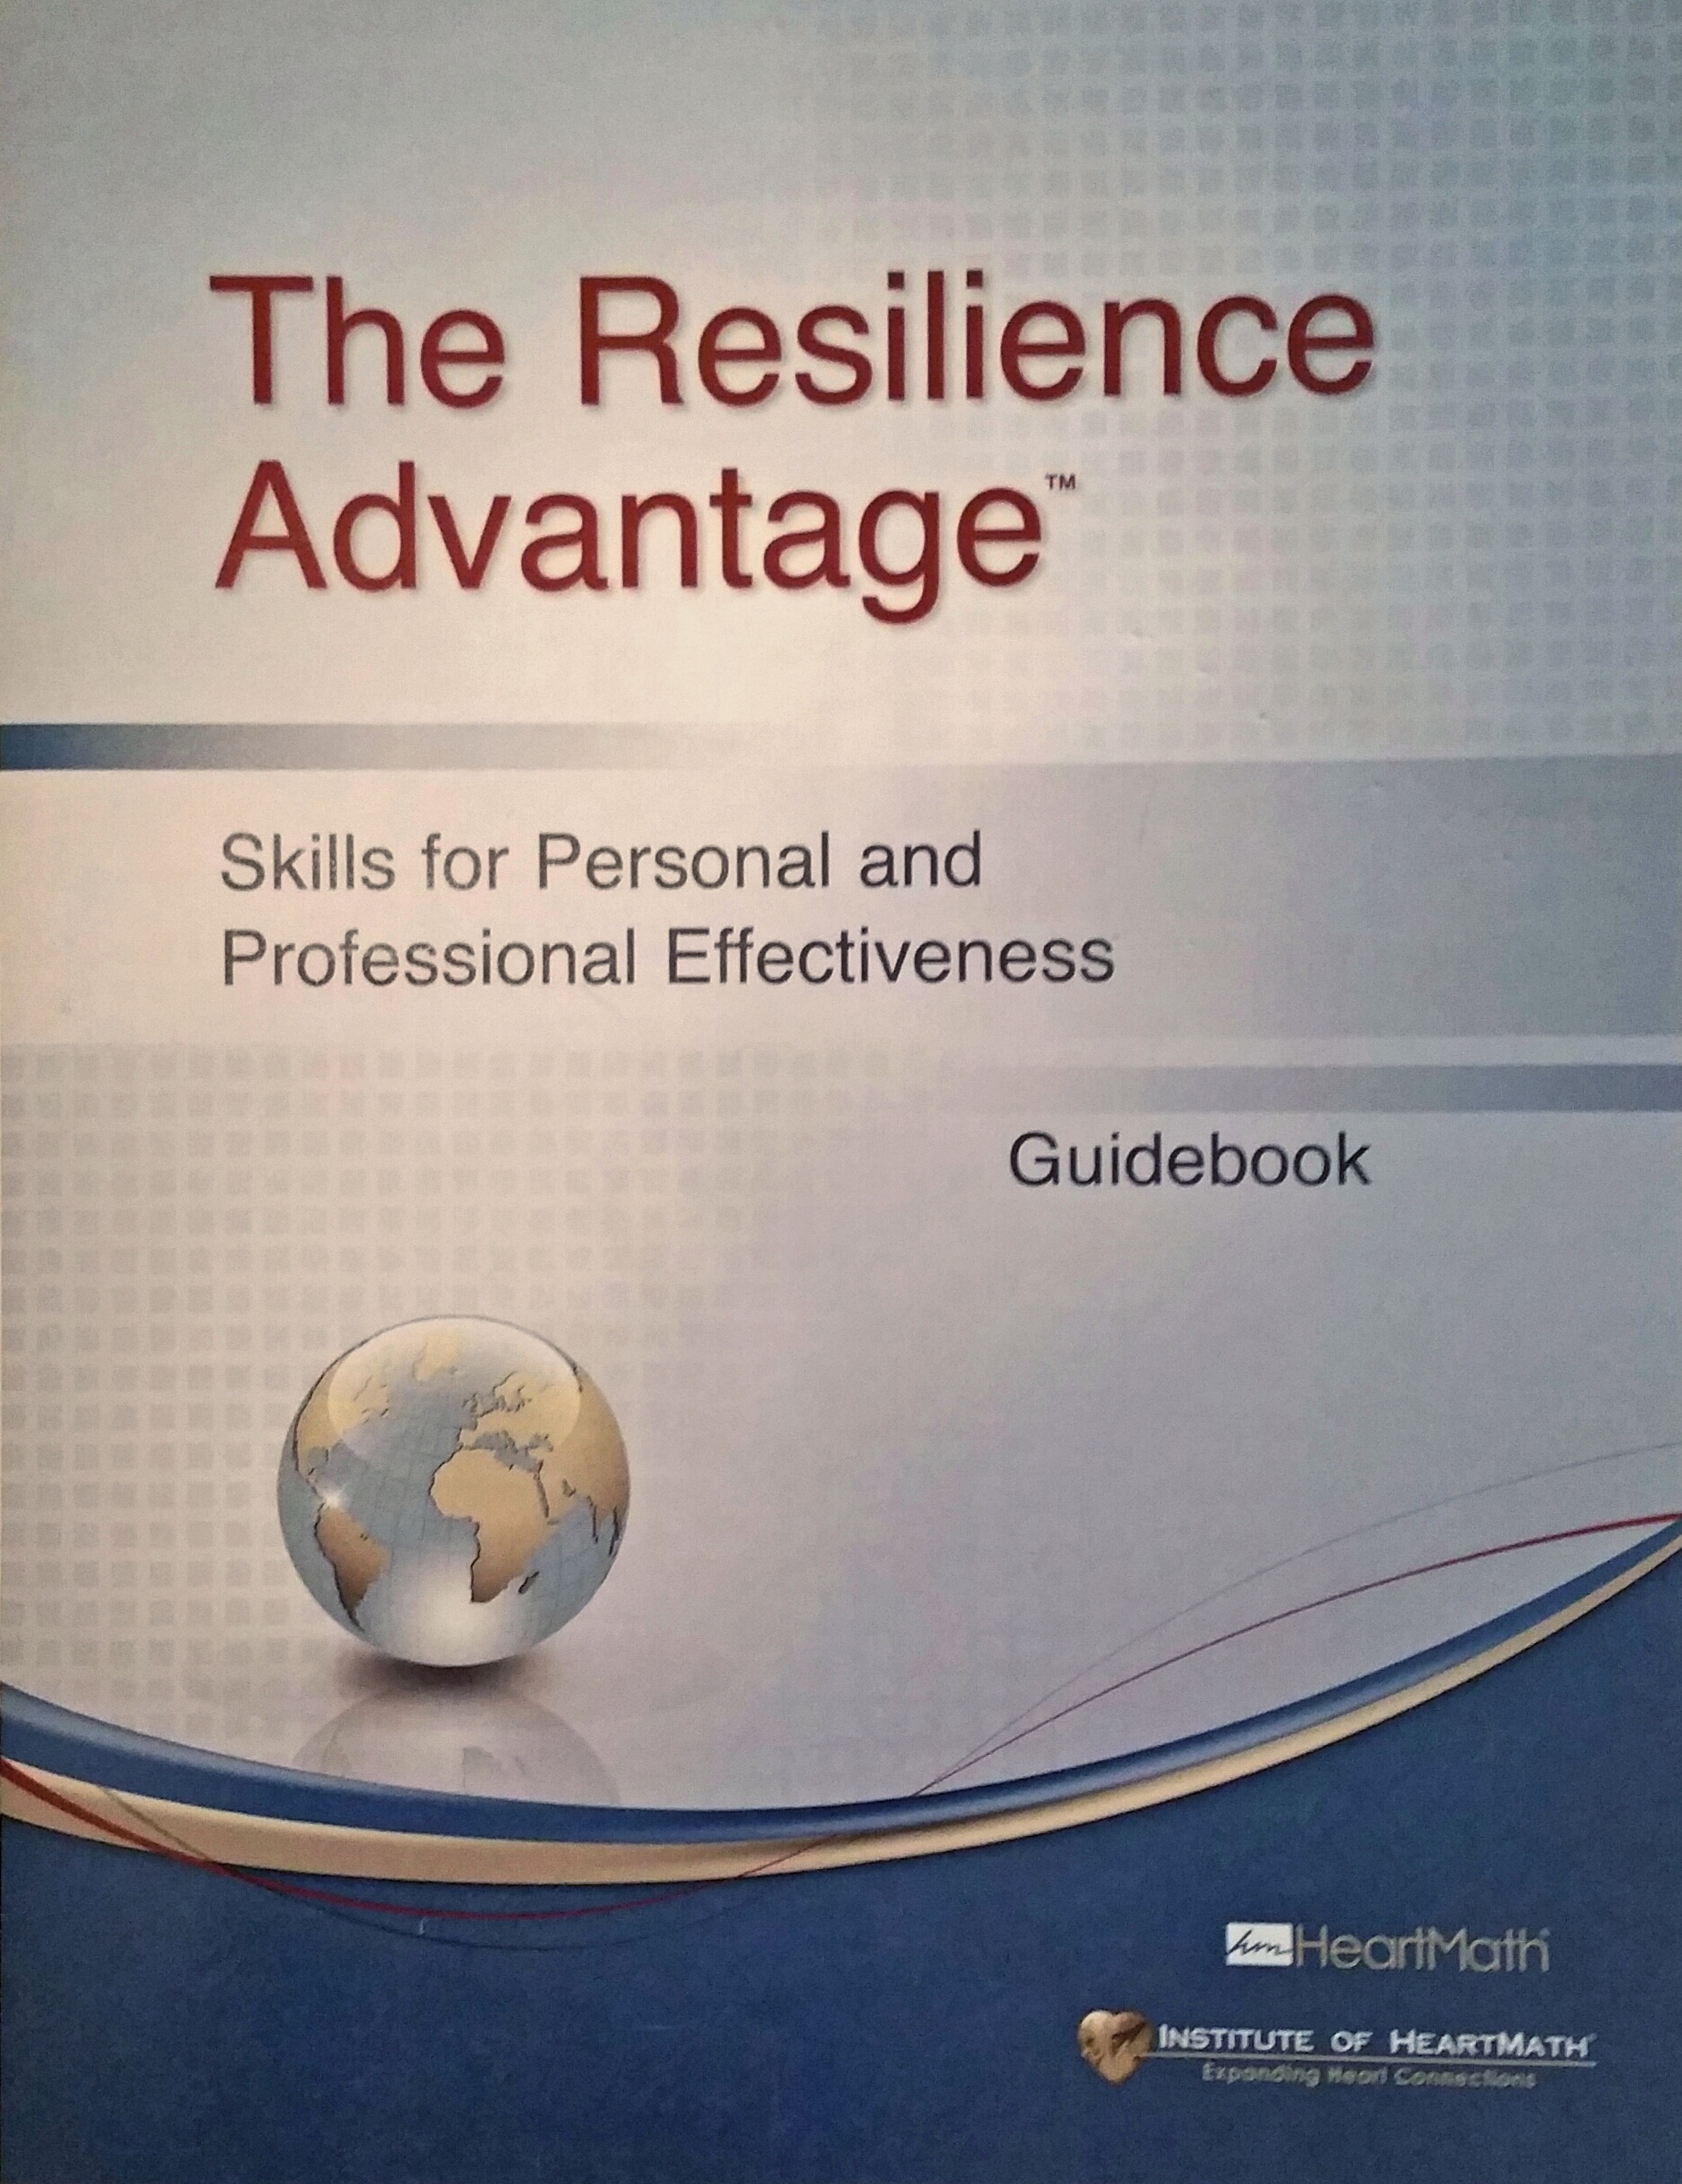 resilience advantage workbook.jpg